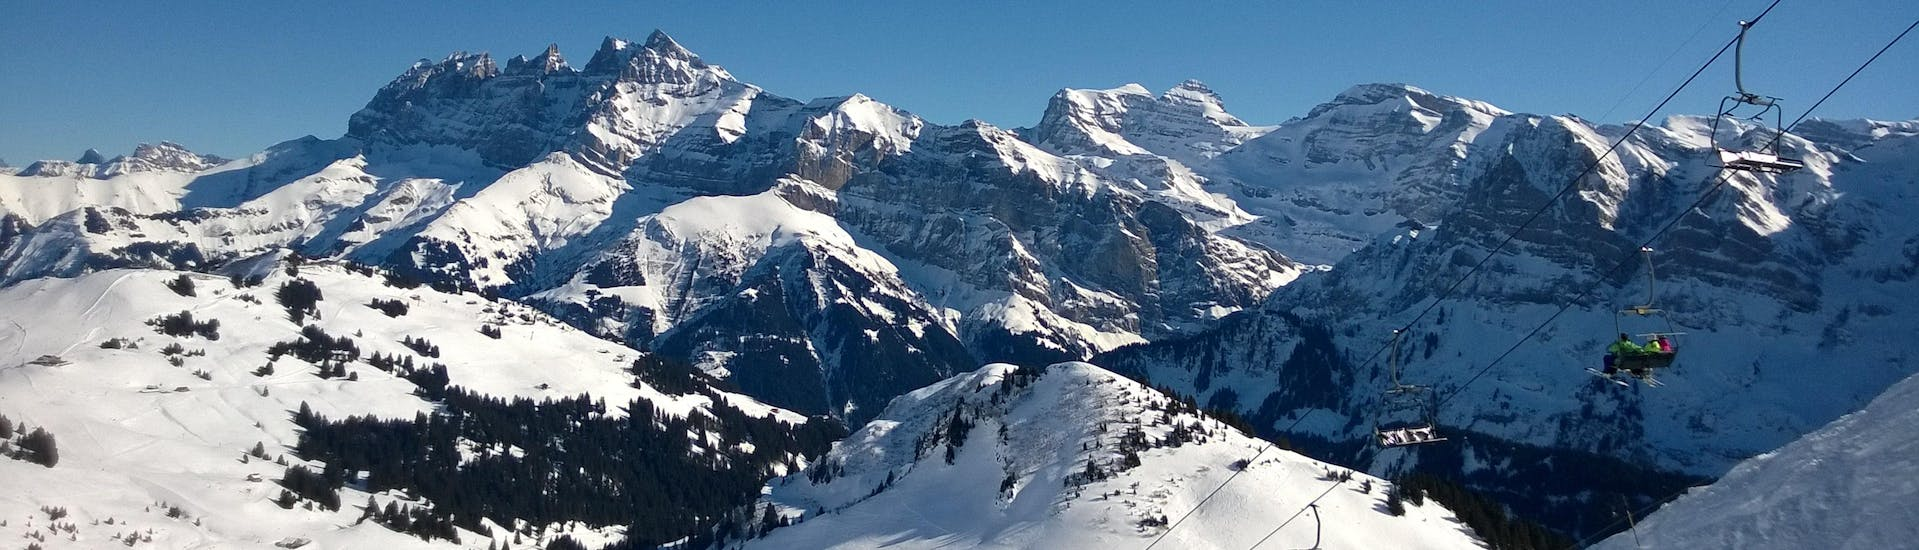 An image of the Dents du Midi close to the Swiss town of Champéry, a popular ski resort where visitors can book ski lessons with one of the local ski schools.